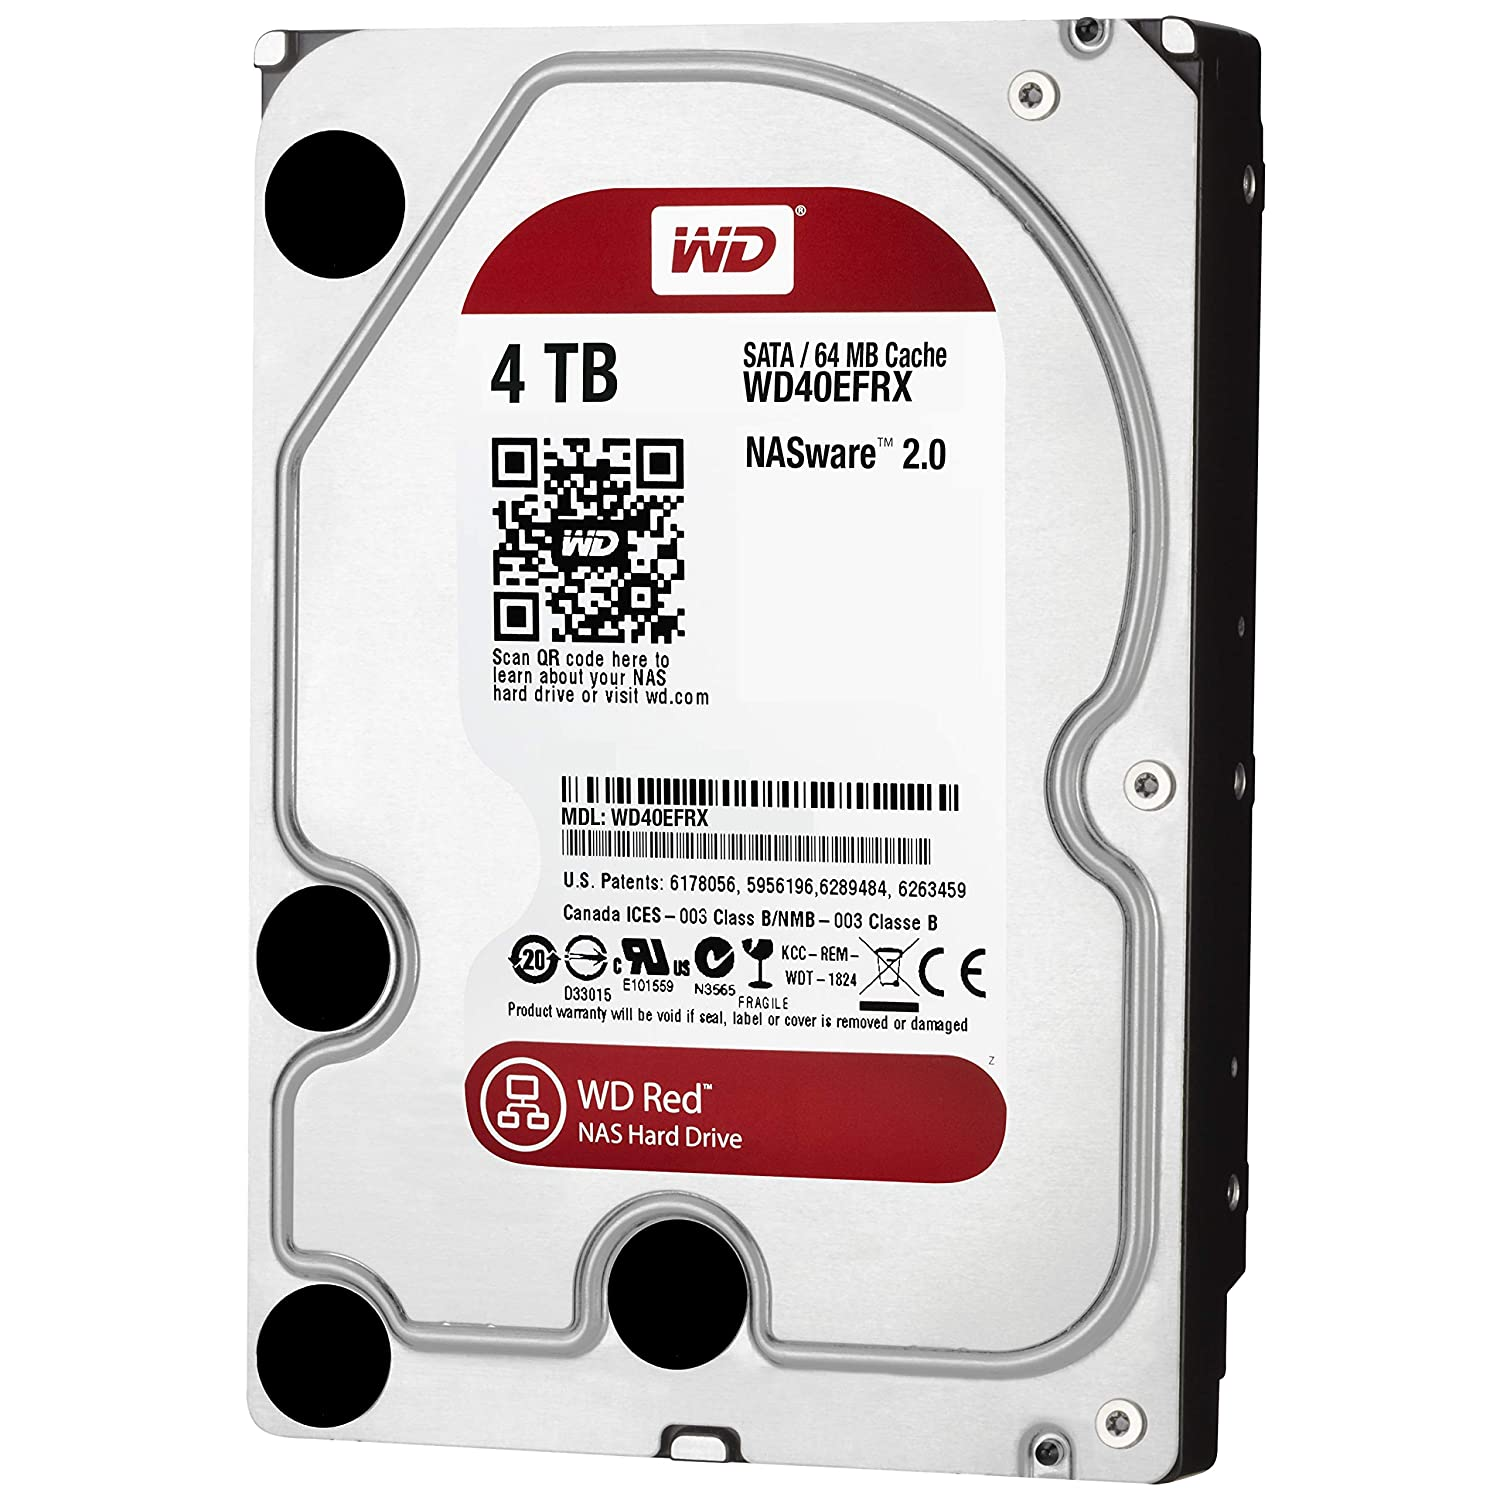 WD Digital - Disco duro para dispositivos NAS de sobremesa de 4 TB (Intellipower, SATA a 6 Gb/s, 64 MB de caché , 3,5') rojo Western-Digital 64 MB de caché 5) rojo Western Digital WD40EFRX